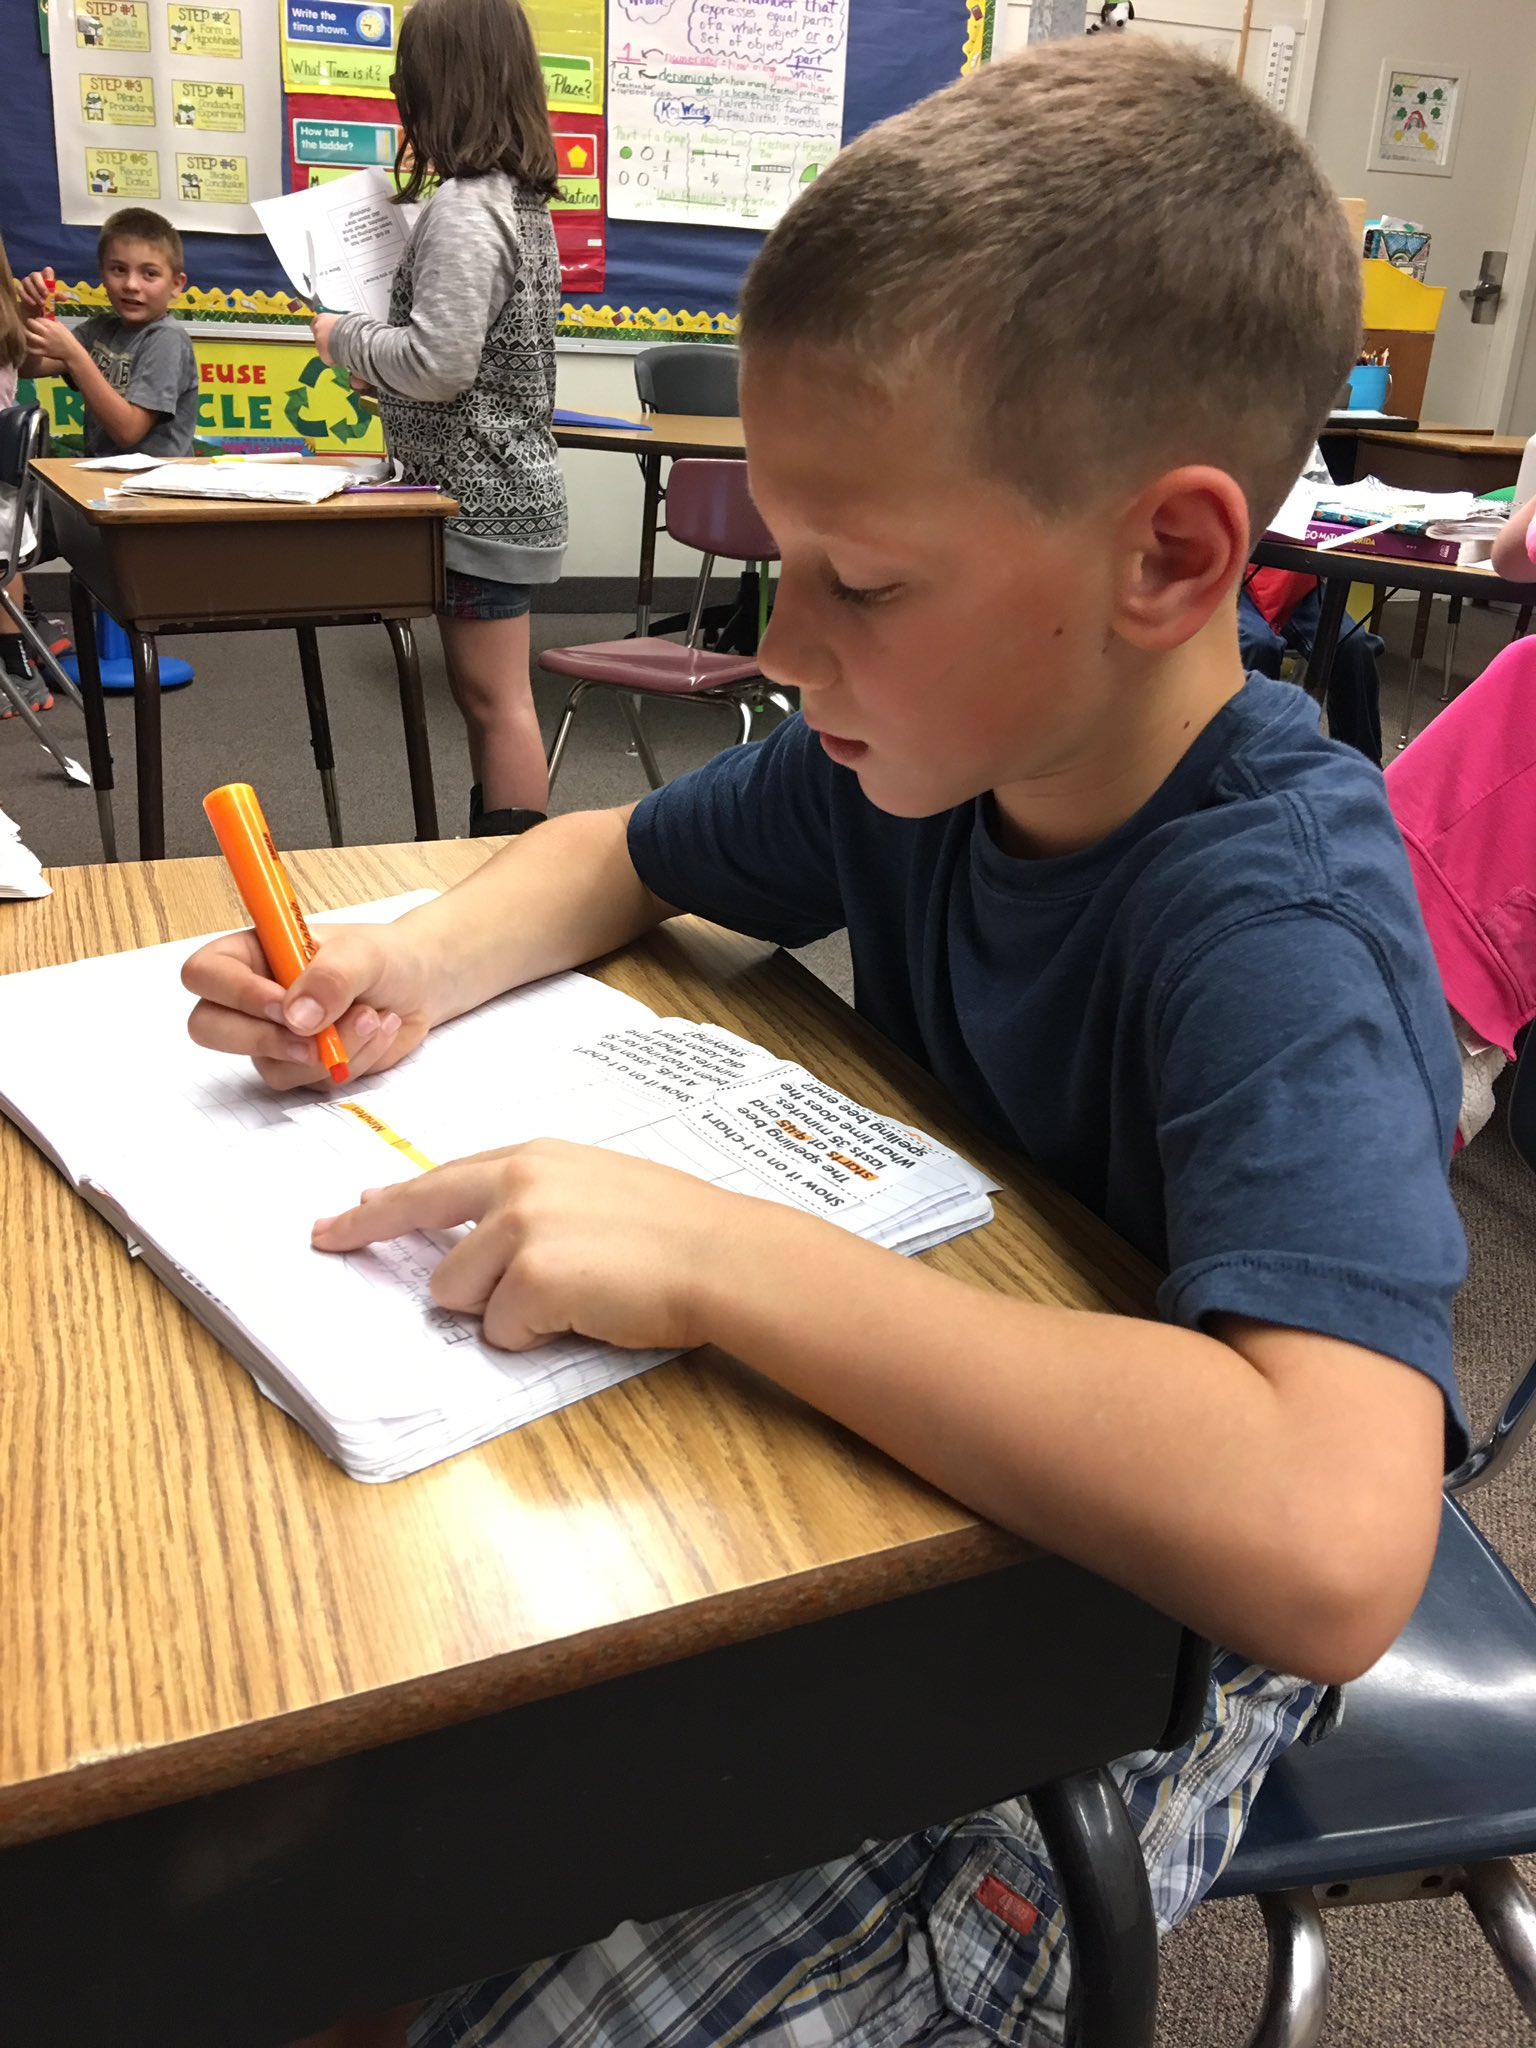 Mrs. Ricciardi's third graders used T-Charts to practice elapsed time this afternoon.  Such concentration ... and fun!  @ipseagles https://t.co/EXVtze3sff